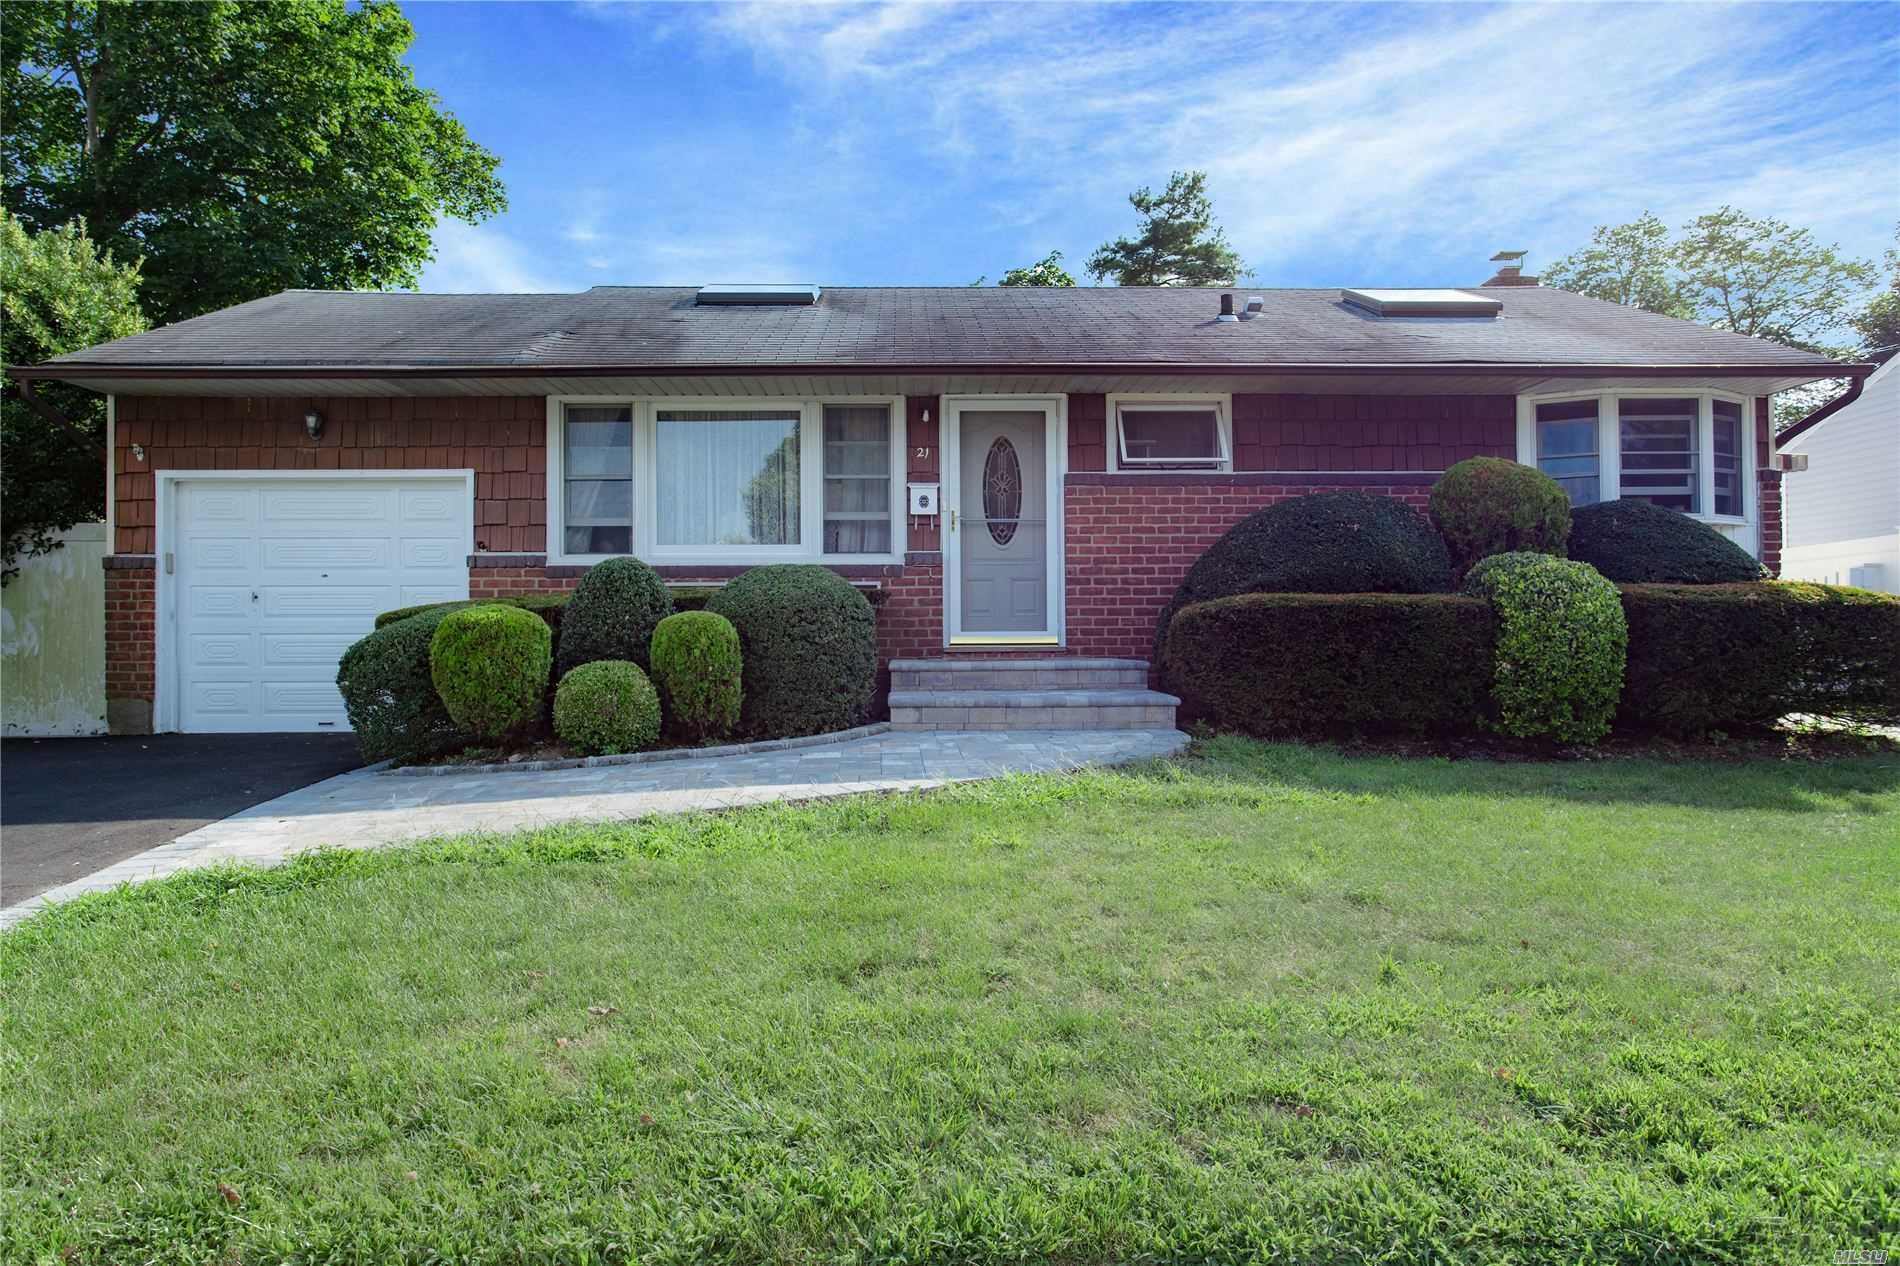 21 Crescent Drive, Old Bethpage, NY 11804 - MLS#: 3155197